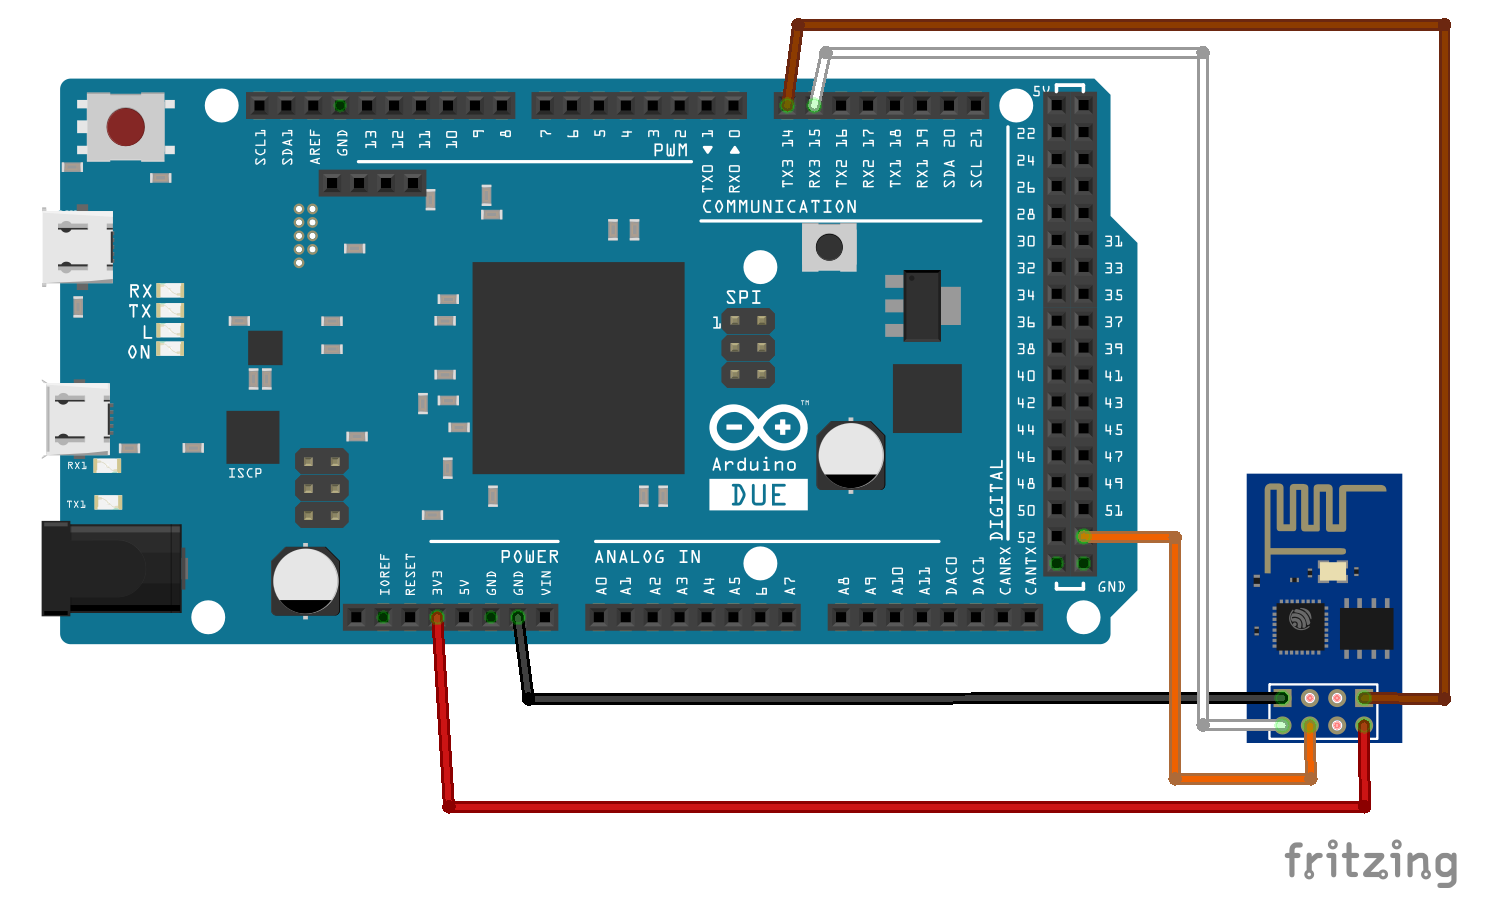 Programming Arduino Mini : Page 1/10 : All-Searchescom